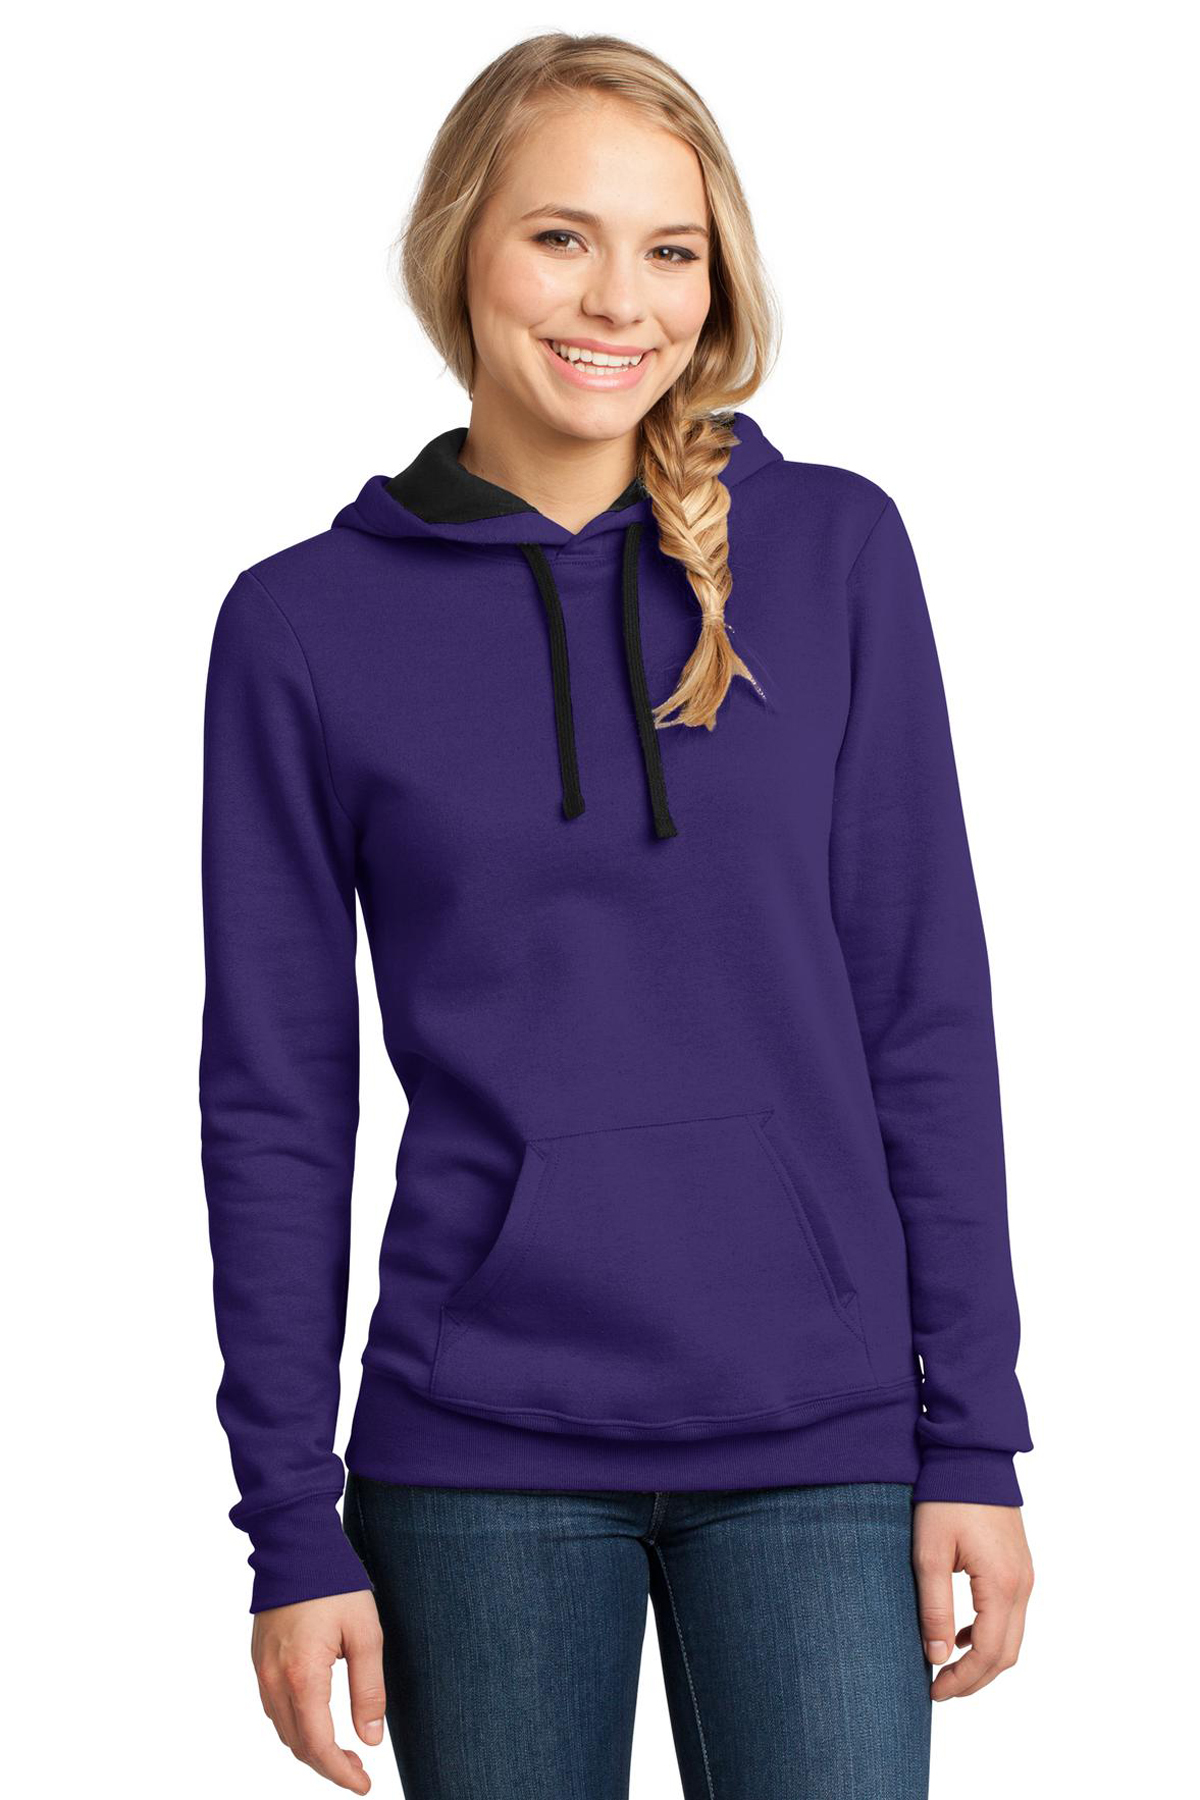 Sweatshirts-Fleece-Hooded-20